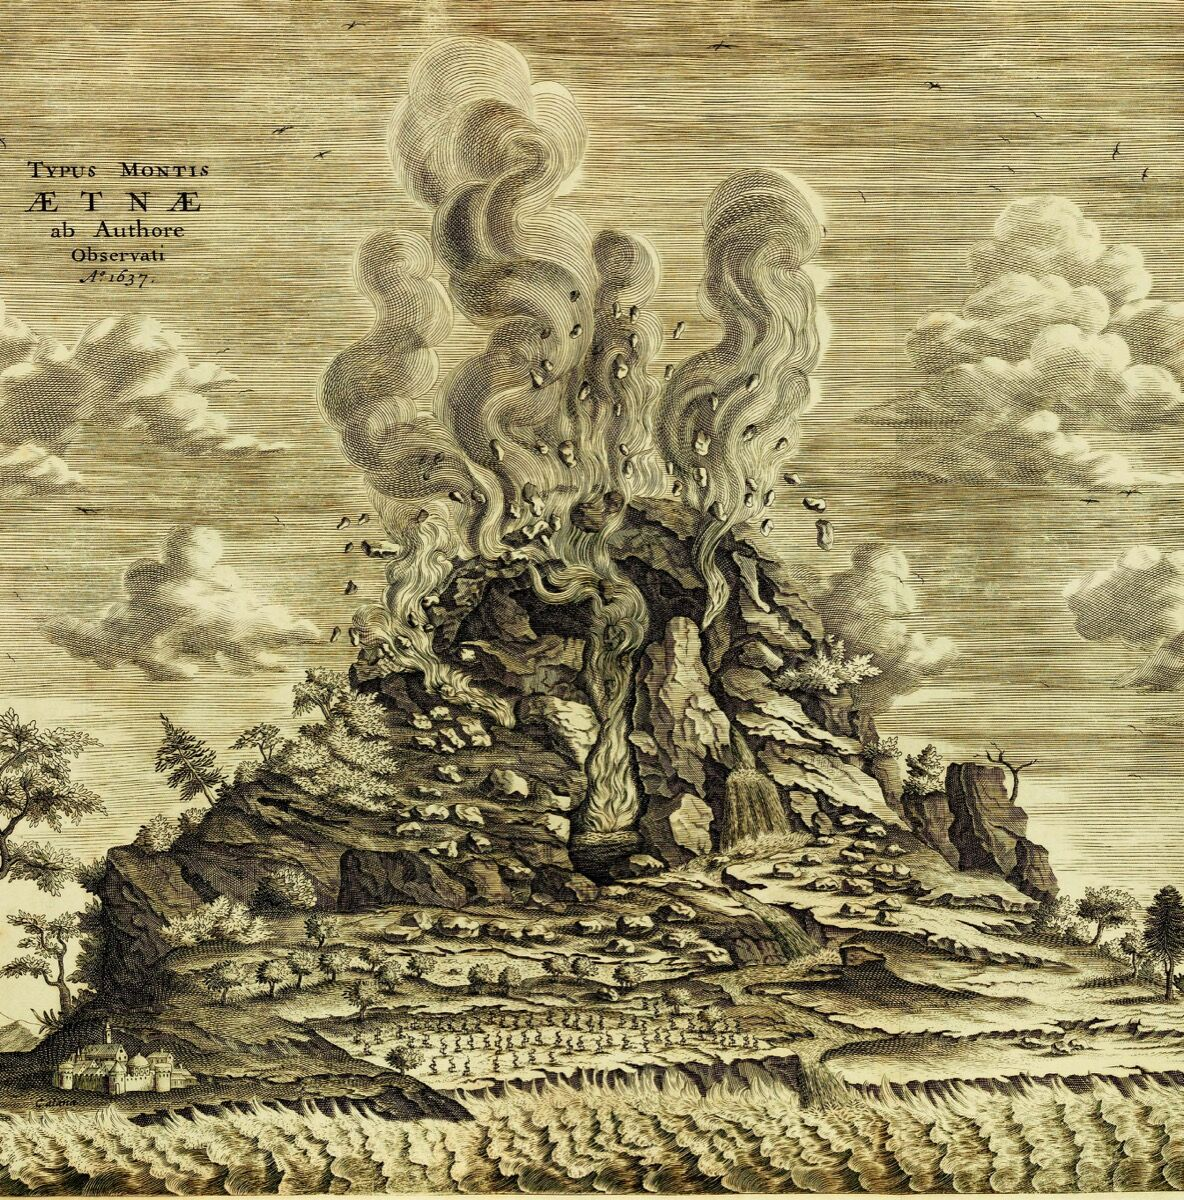 Mount Etna, 1637, from Athanasius Kircher's Mundus Subterraneus, 1665. Courtesy Bodleian Libraries, University of Oxford.